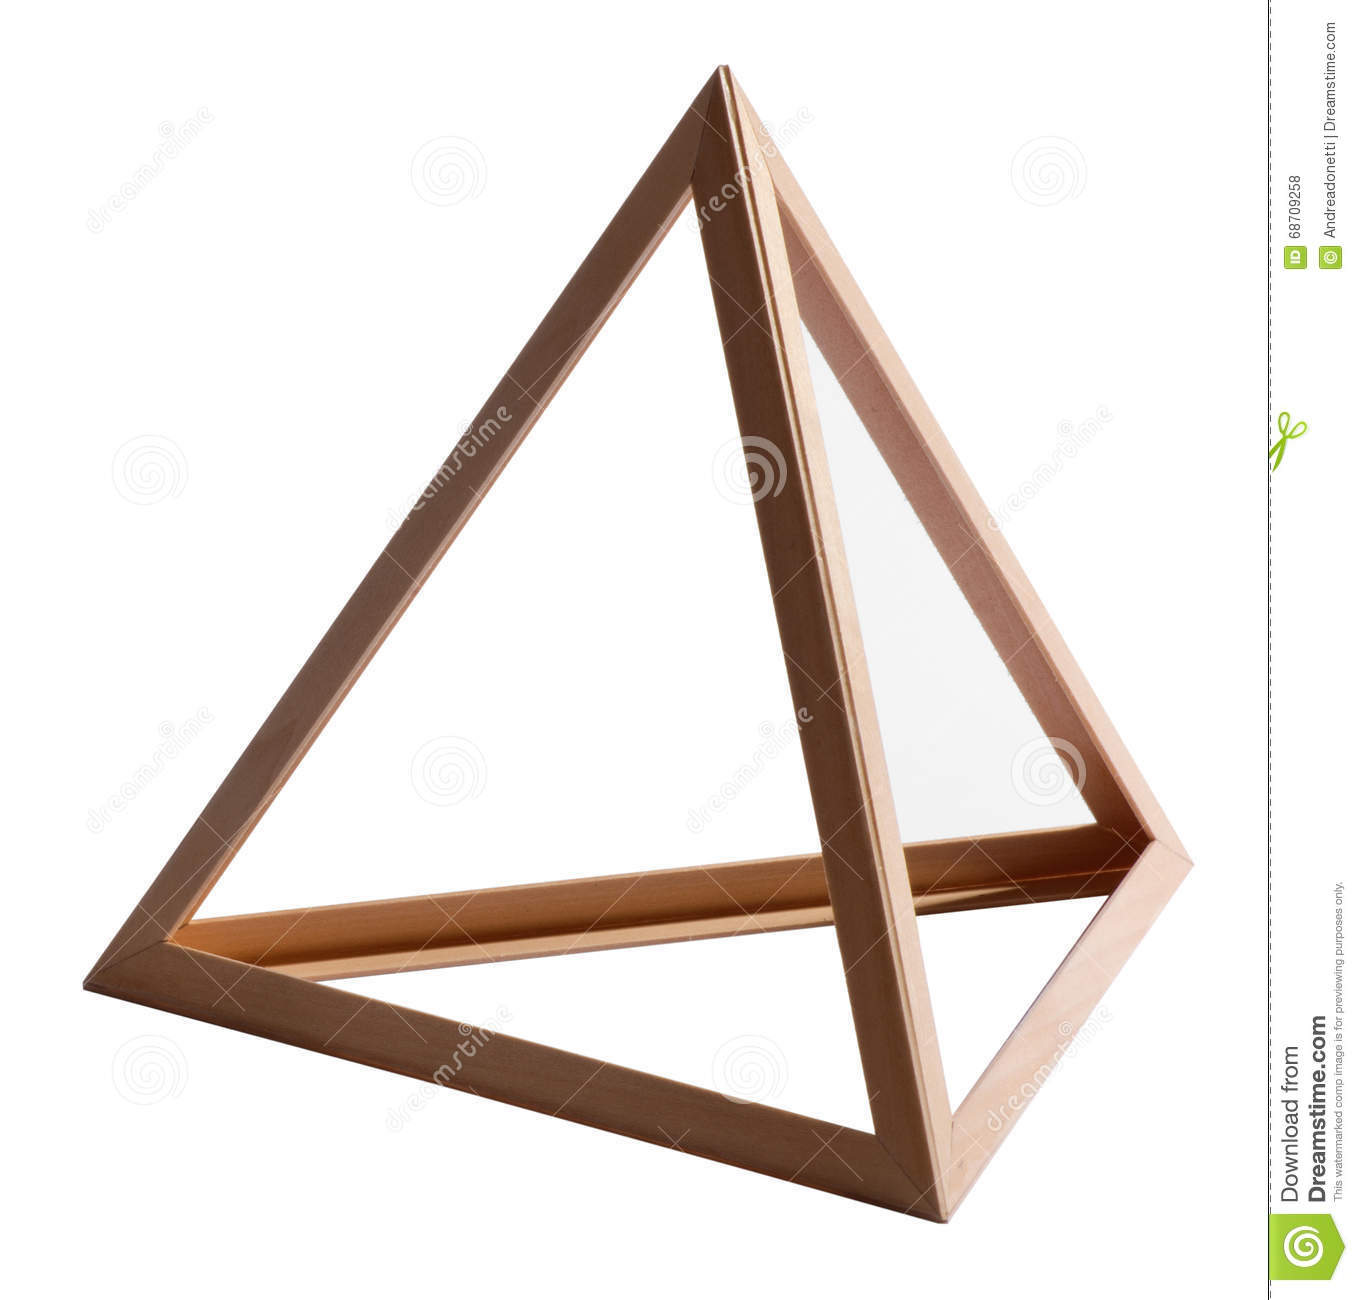 Empty Wooden Triangle Frame On White Stock Photo - Image of triangle ...